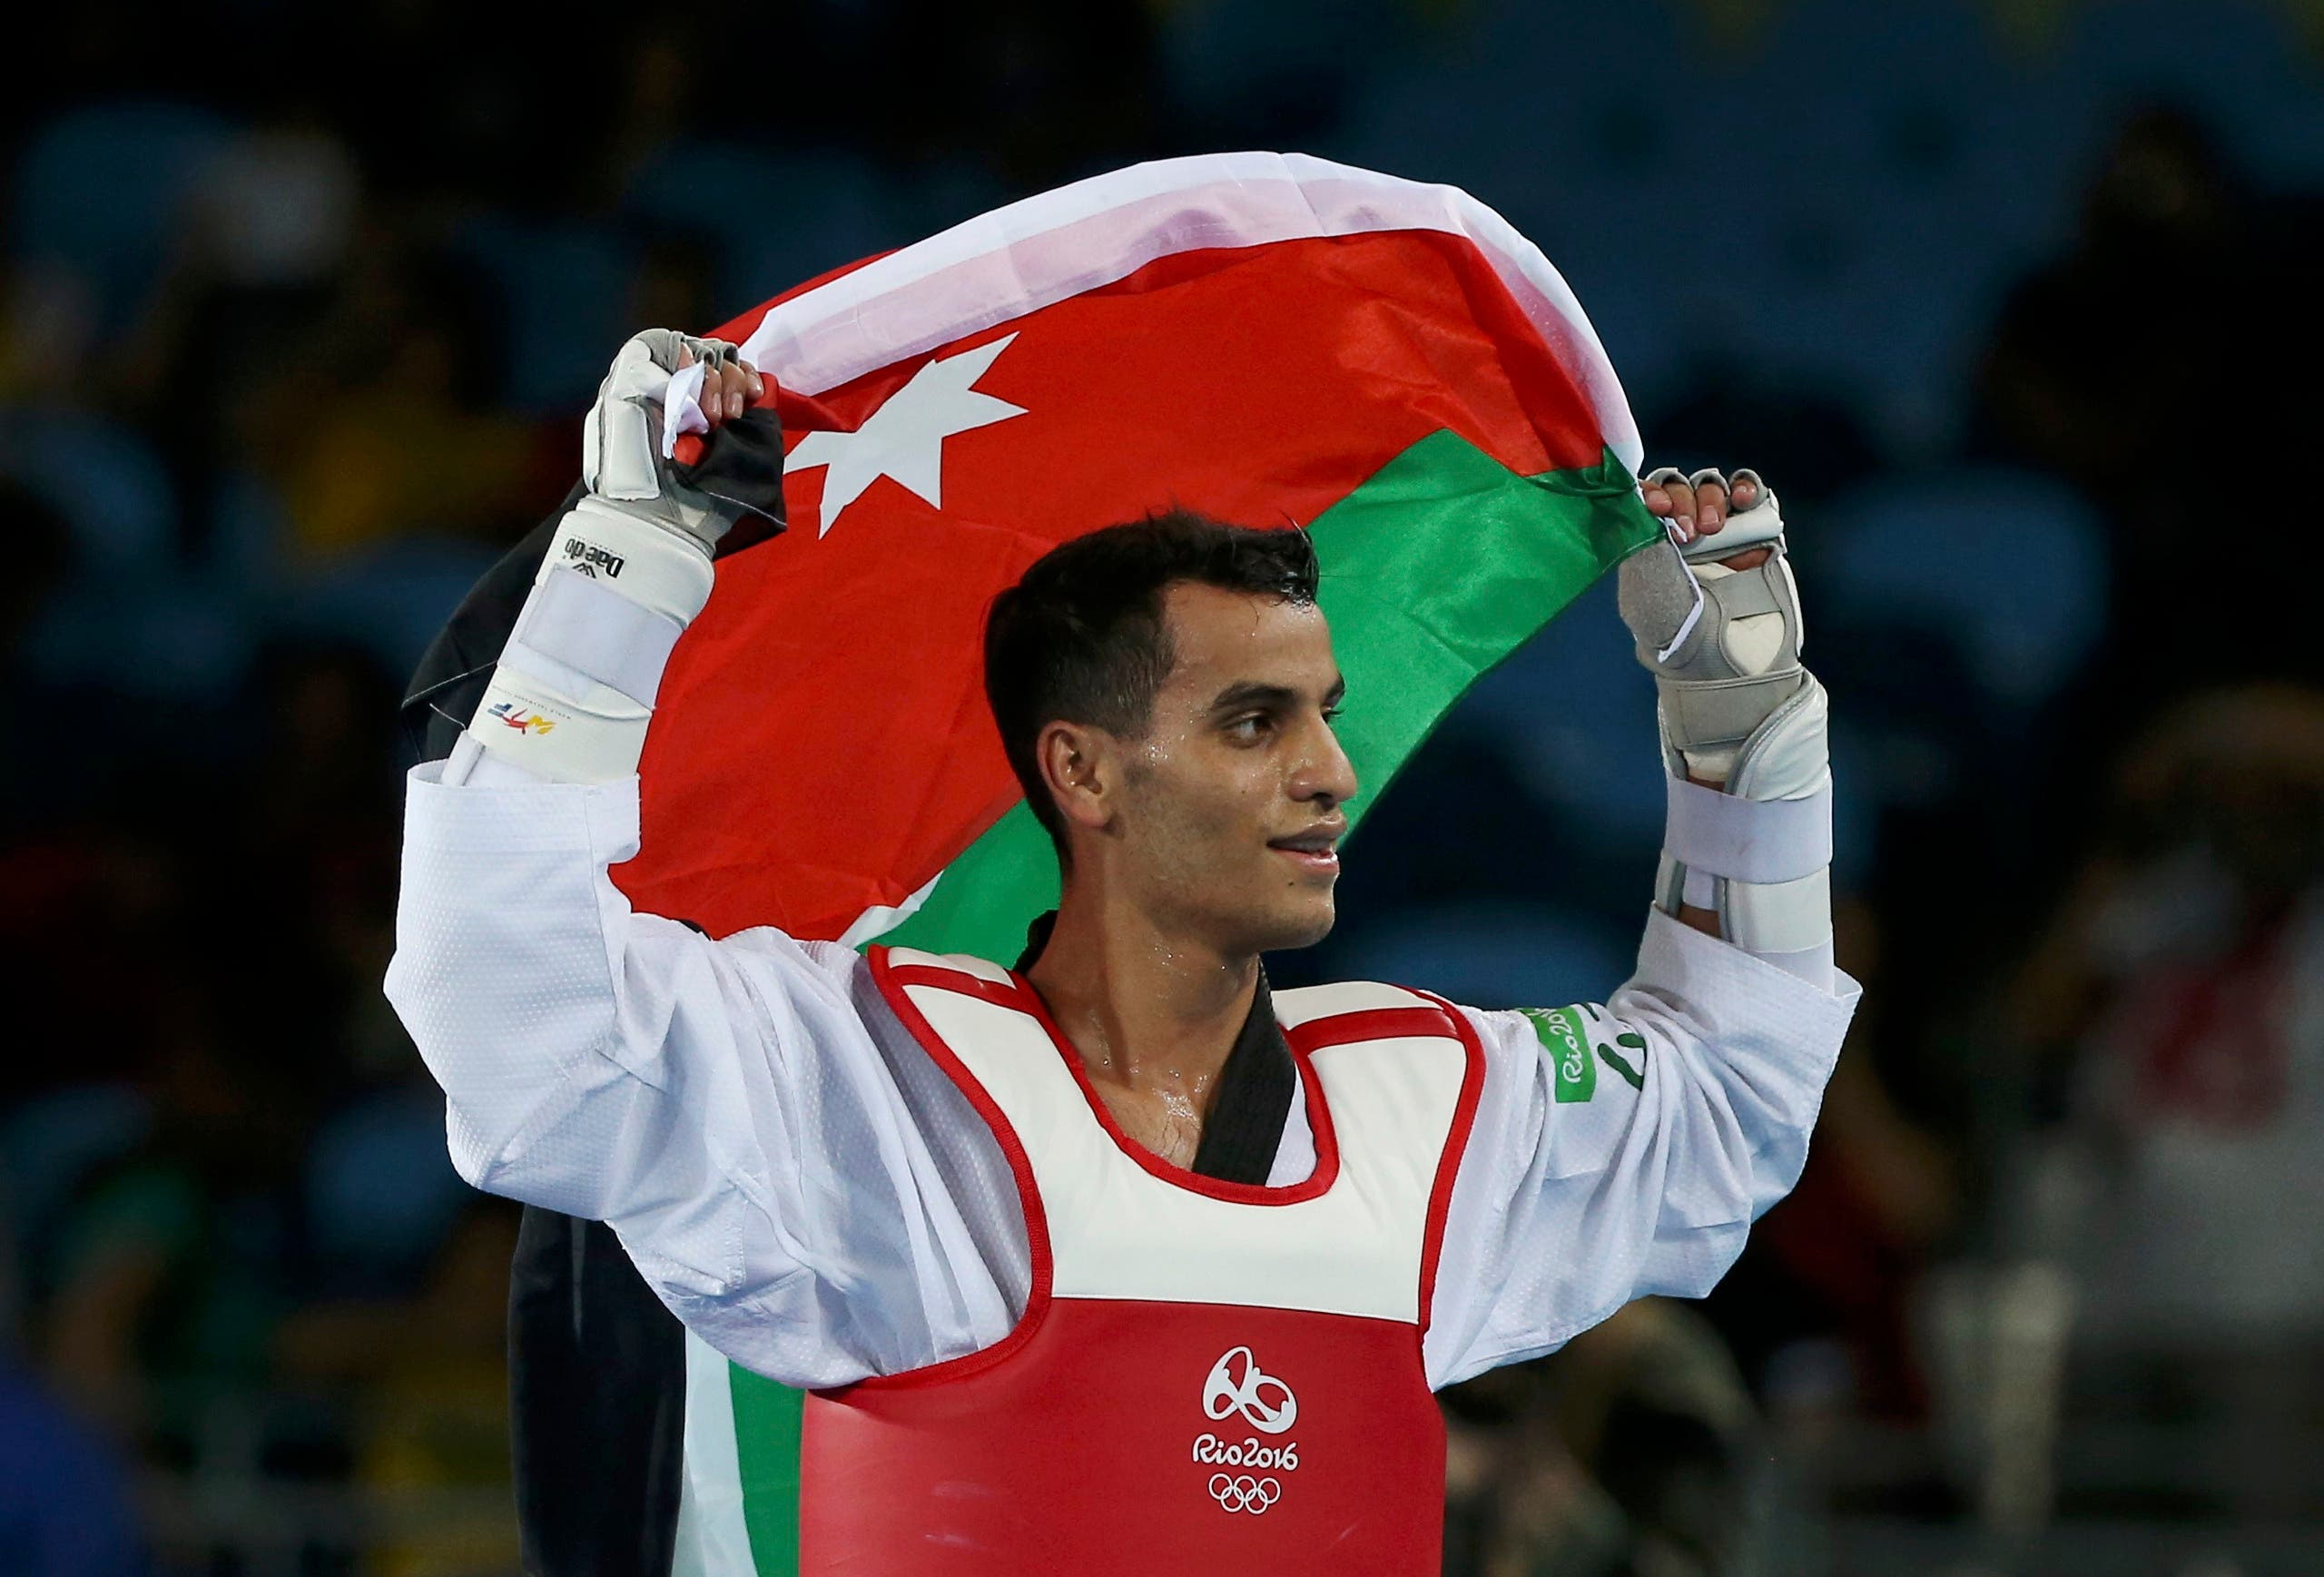 Ahmad Abughaush (JOR) of Jordan celebrates after defeating Alexey Denisenko (RUS) of Russia. REUTERS